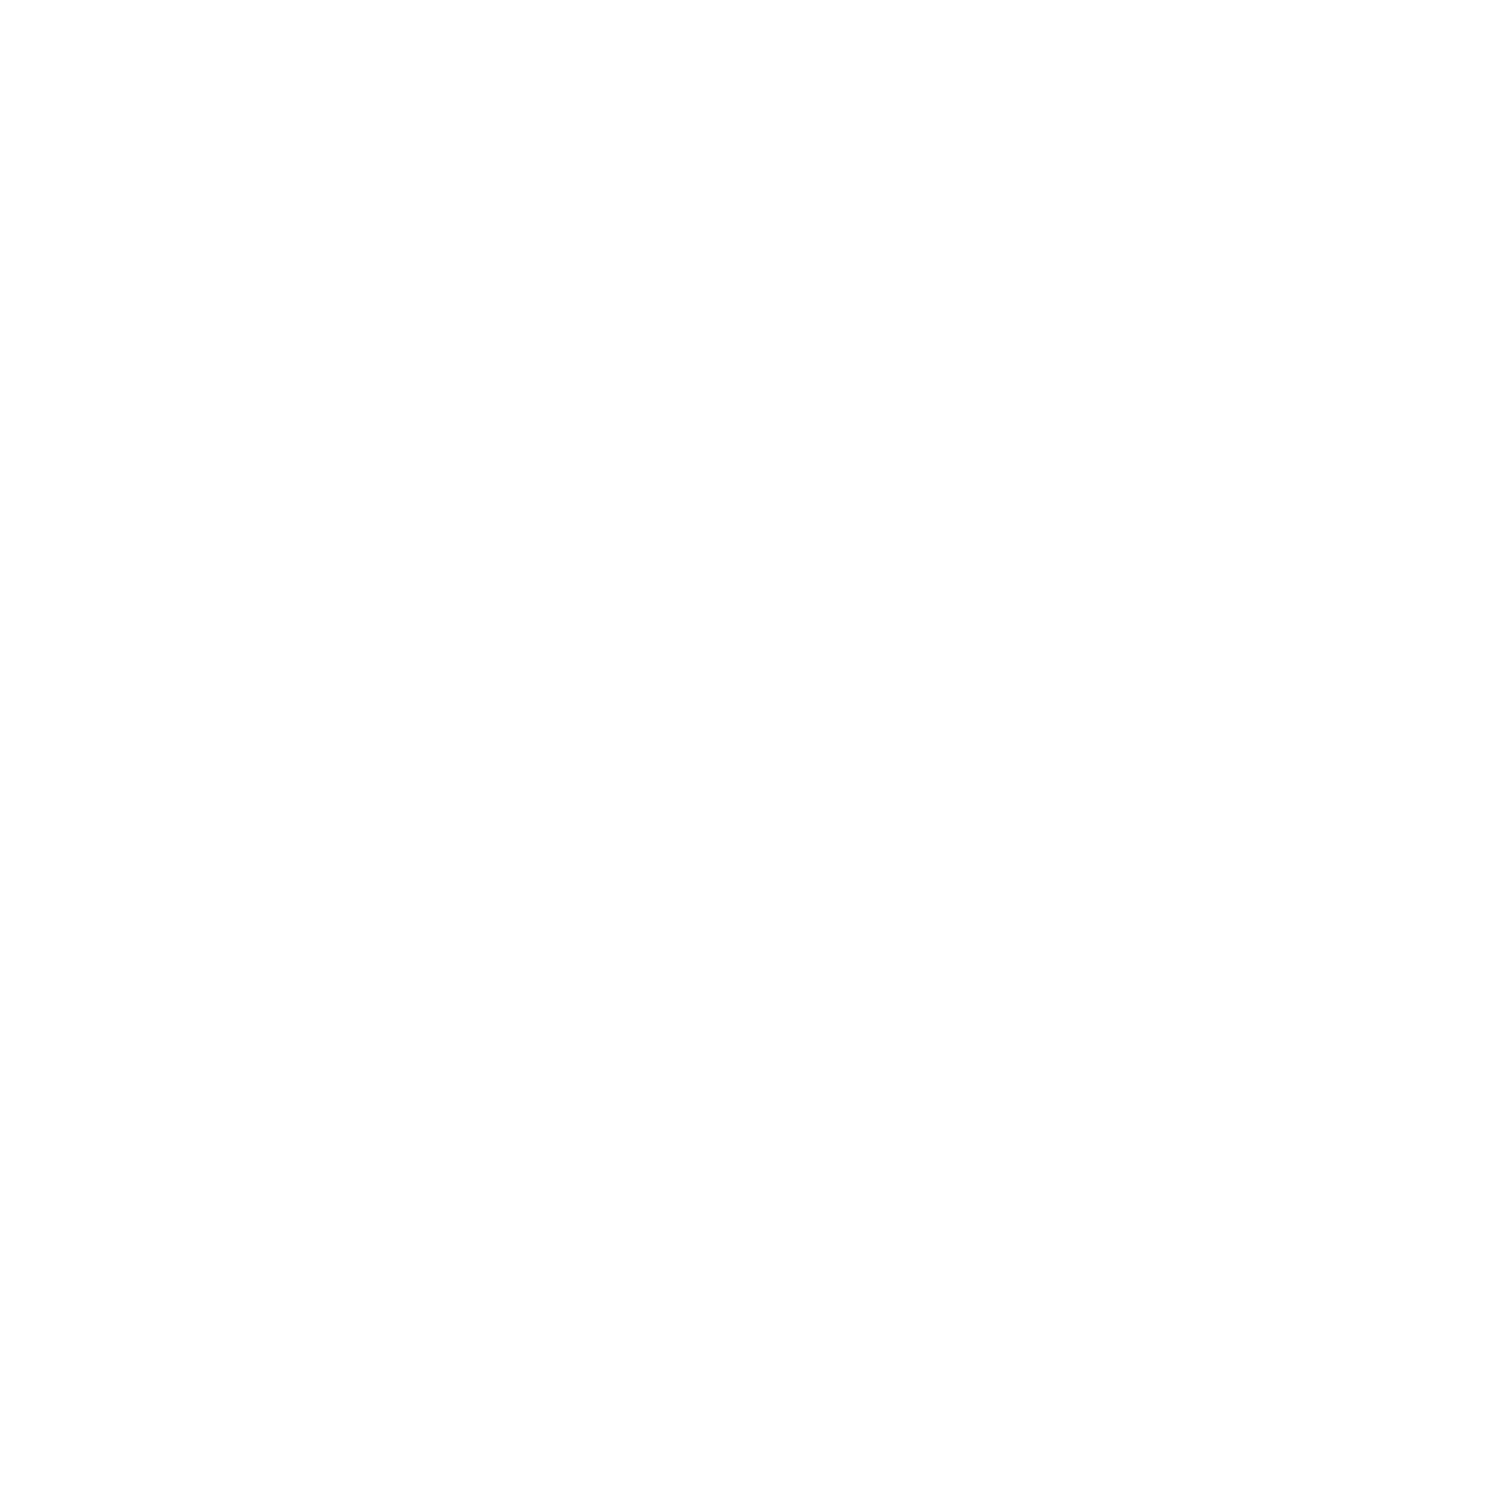 0800 FallProtect Scaffolding